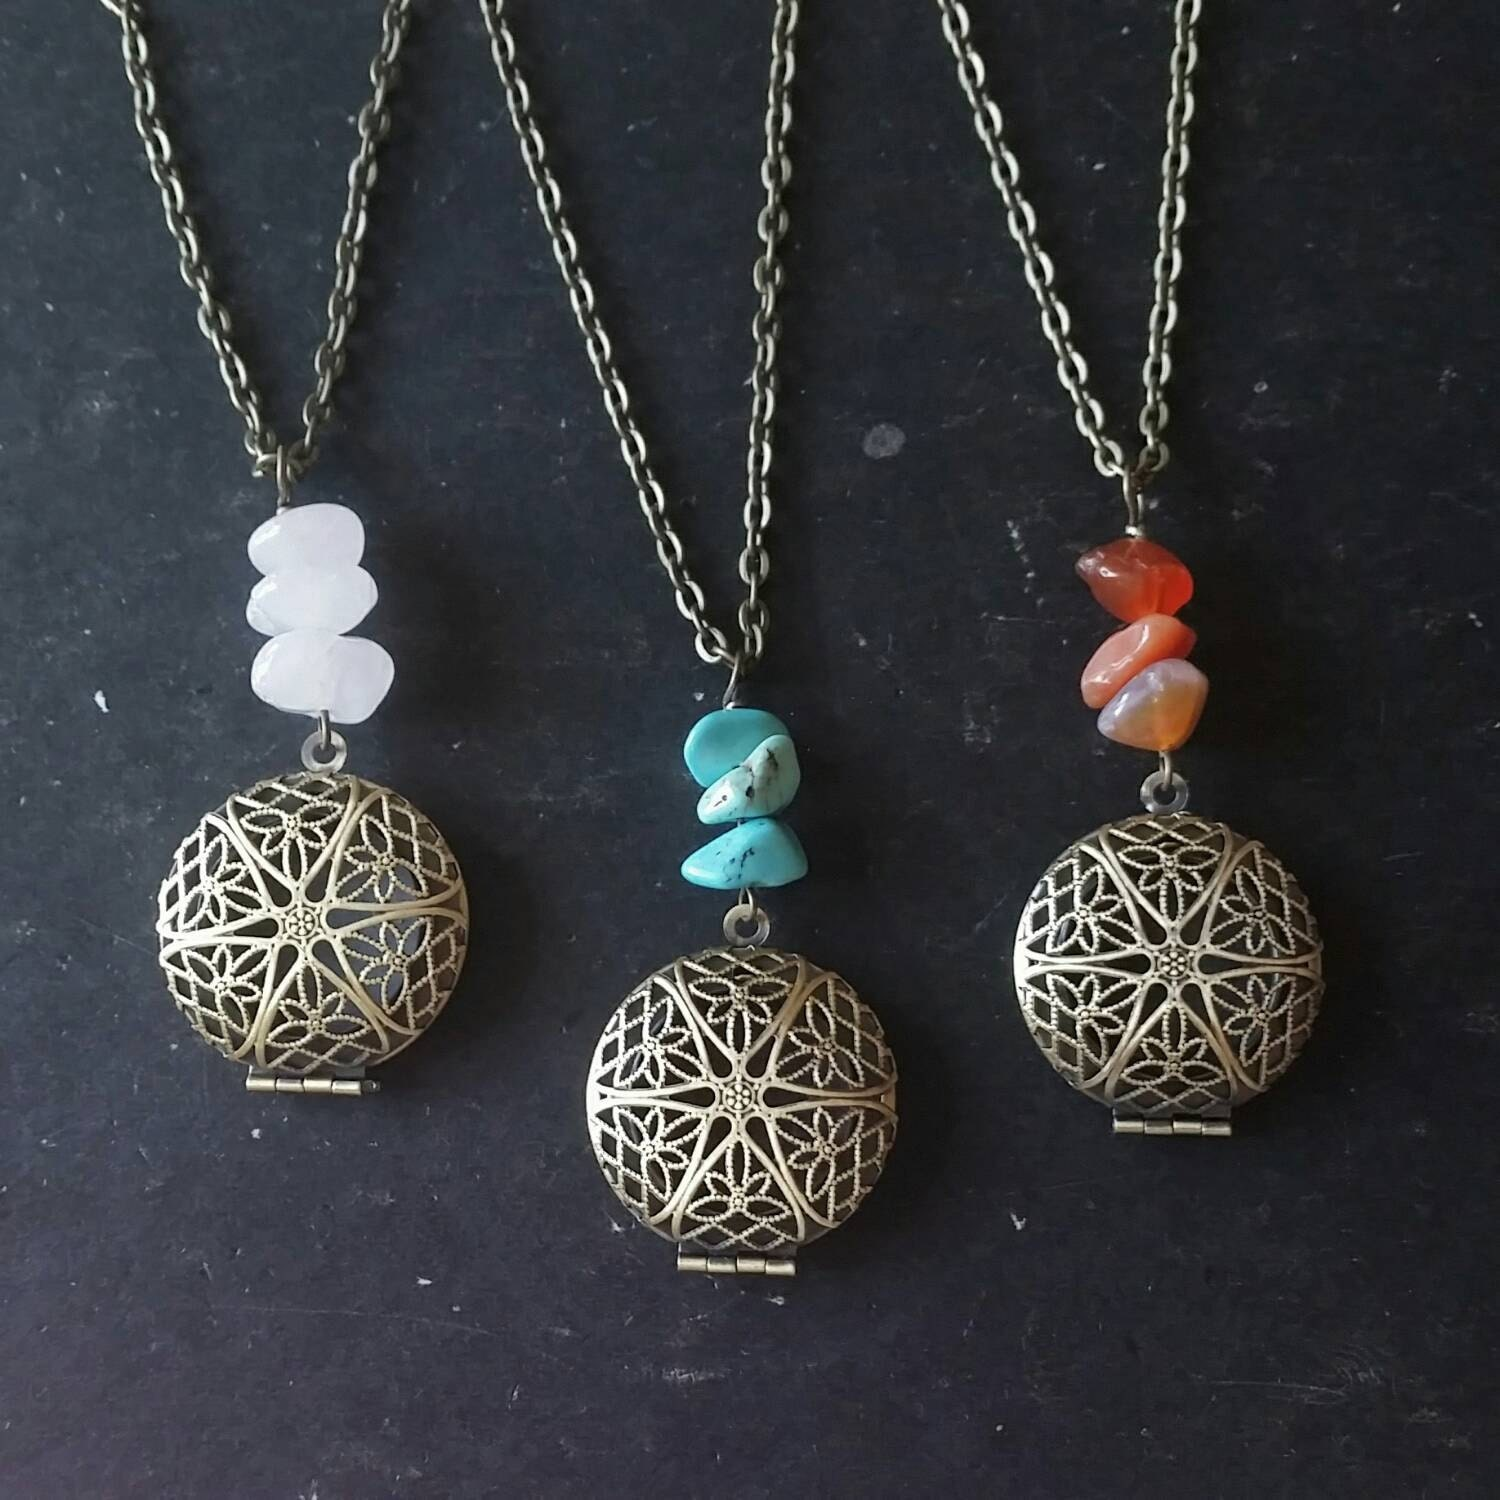 gemstone aromatherapy necklace essential diffuser